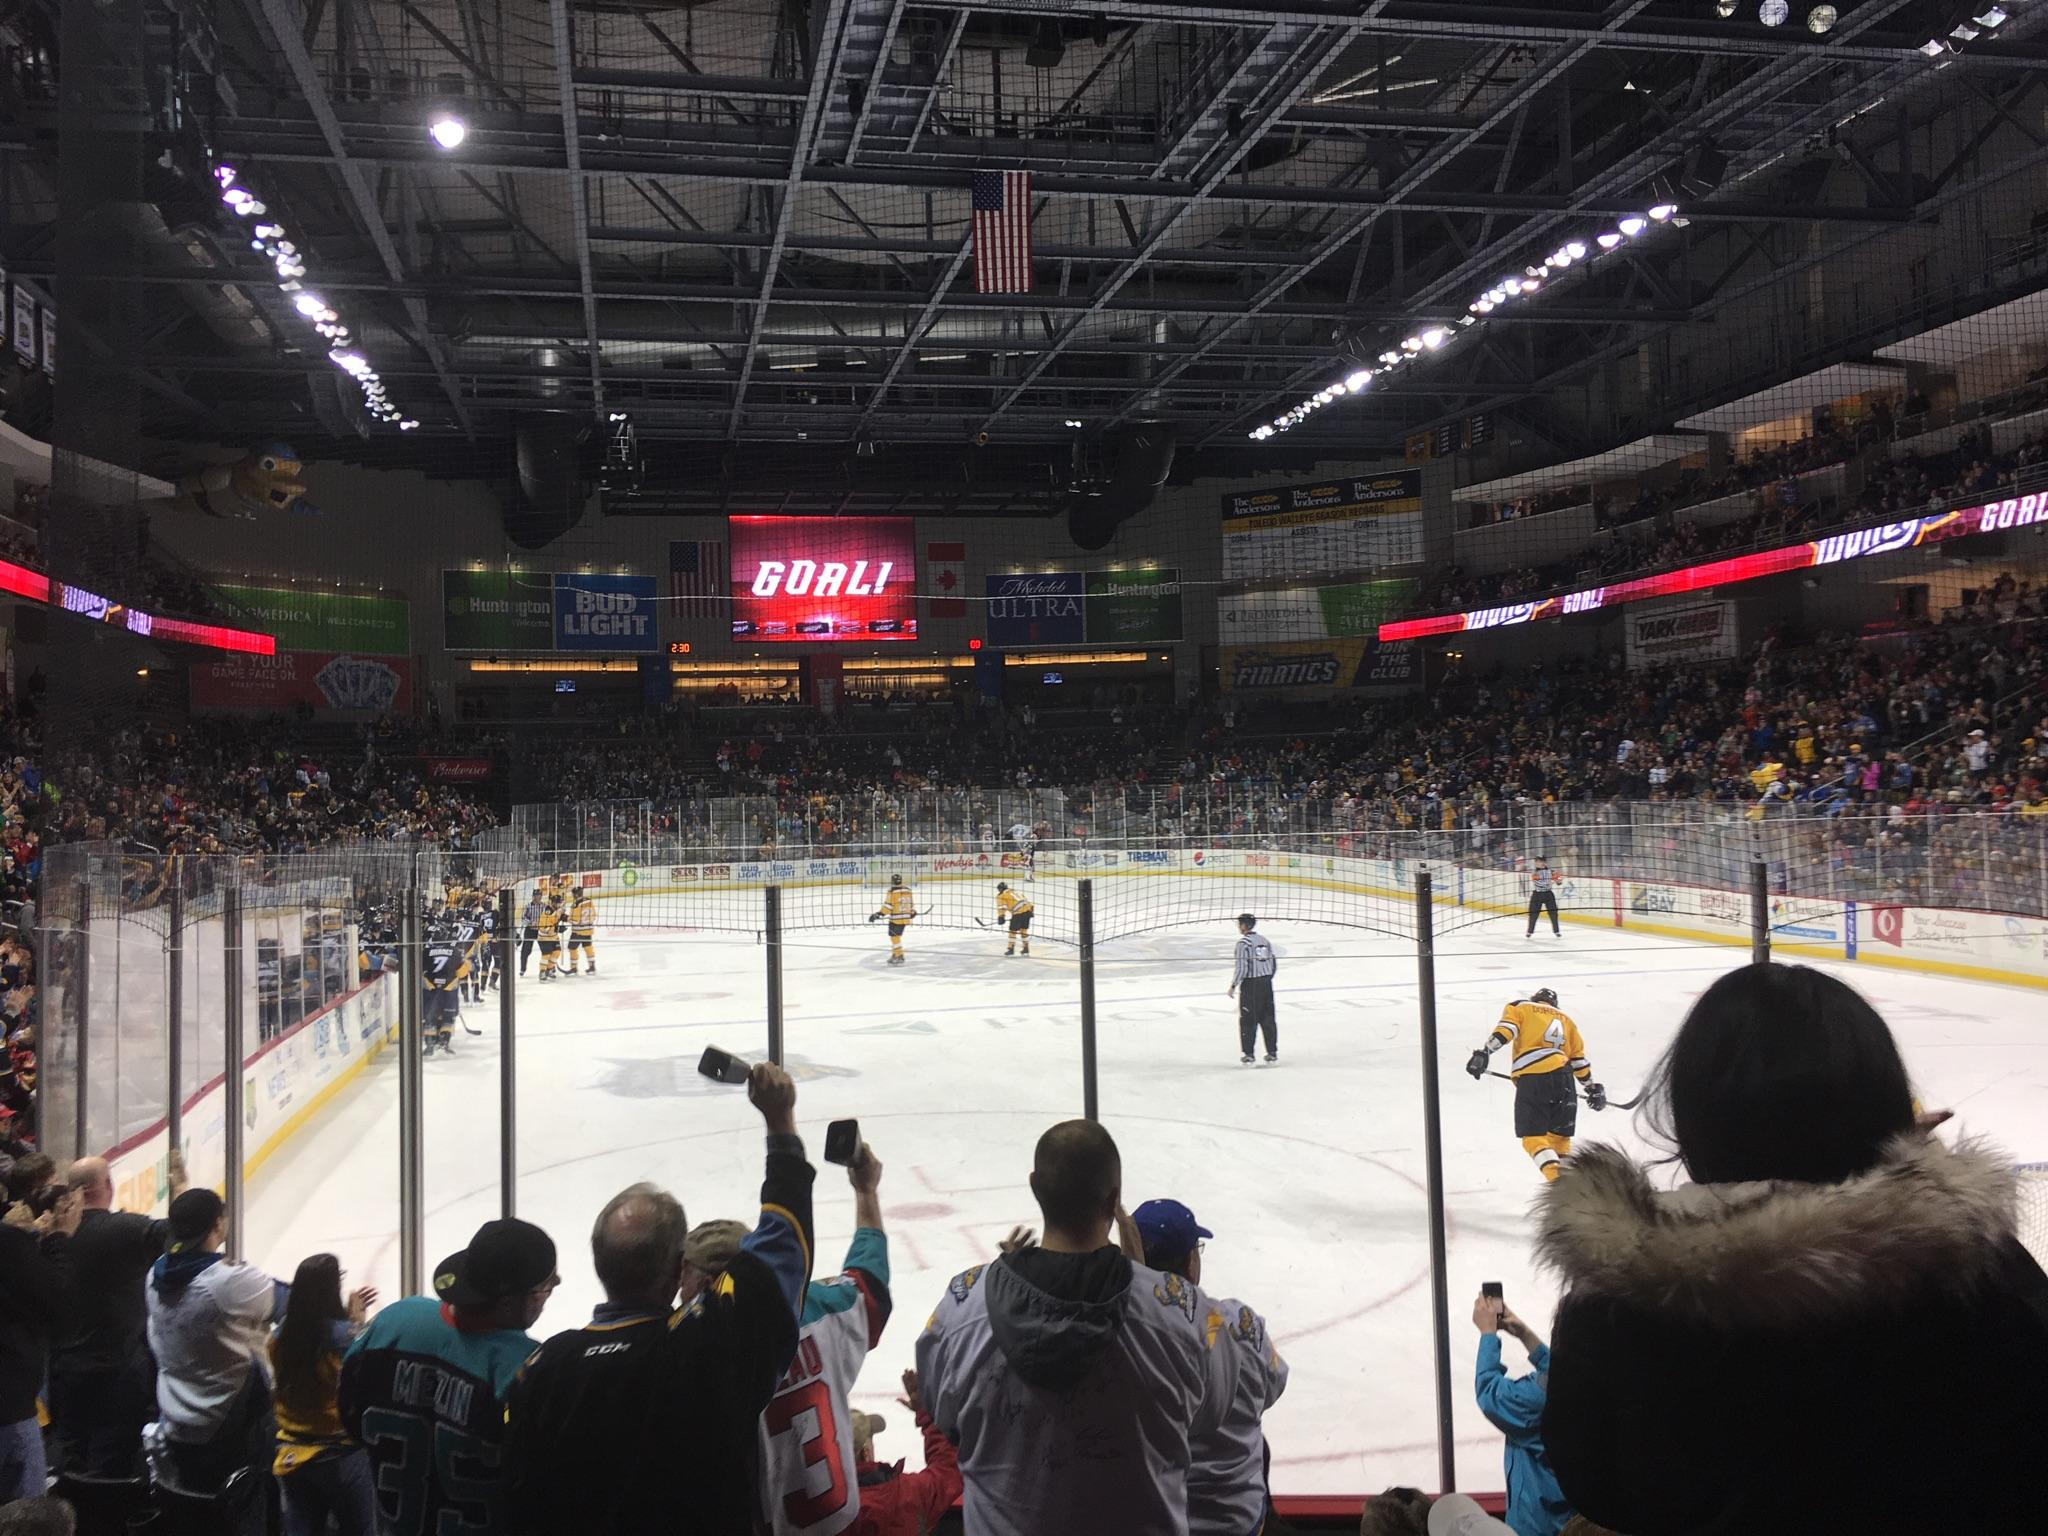 Review: Toledo Walleye Hockey Fun For The Whole Family